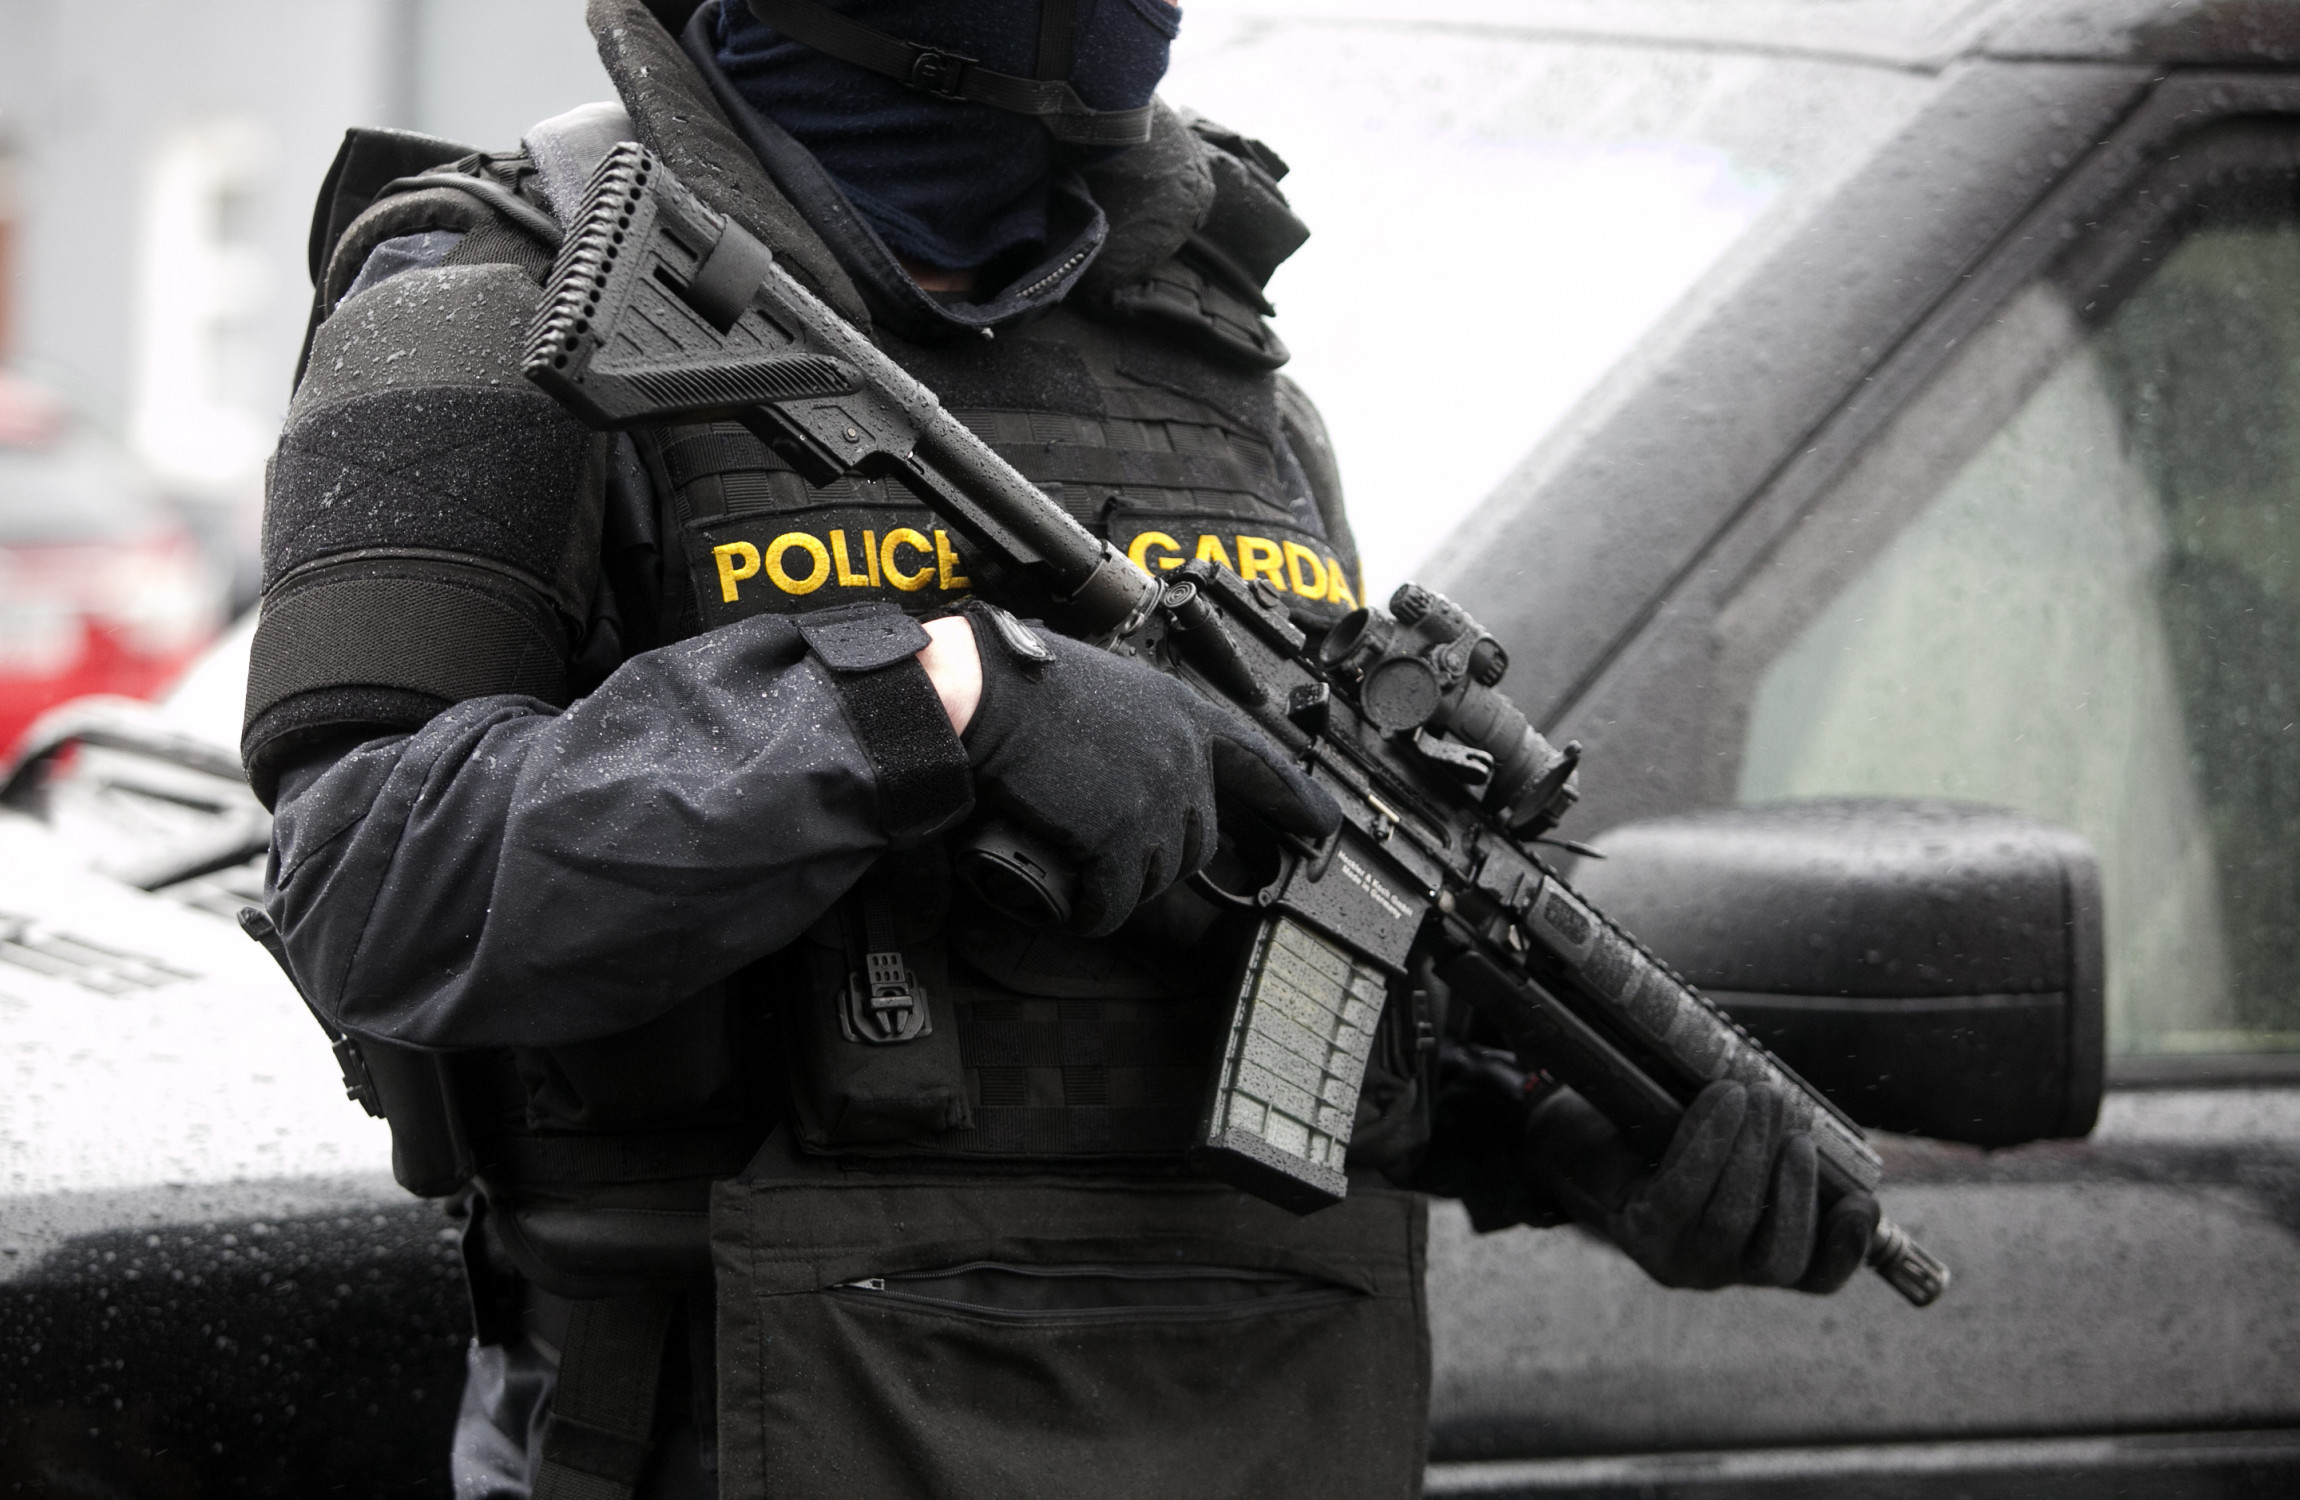 Gardaí targeting organised crime seize loaded gun in Dublin